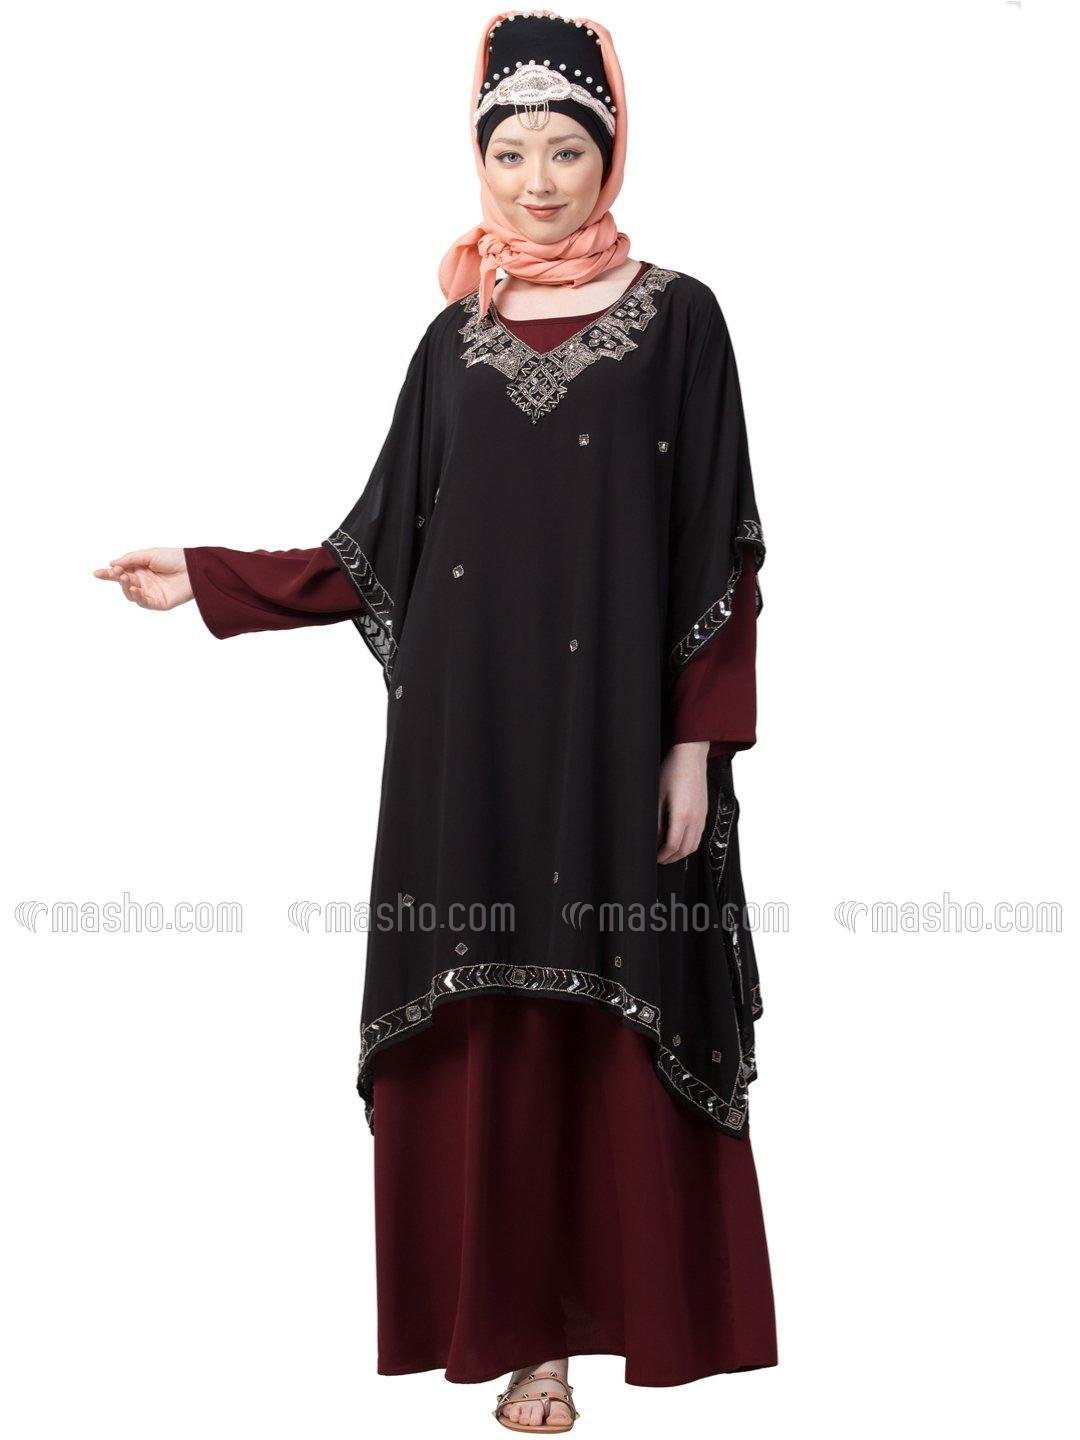 Georgette Double Layer With Embellished Party Abaya In Black And Maroon